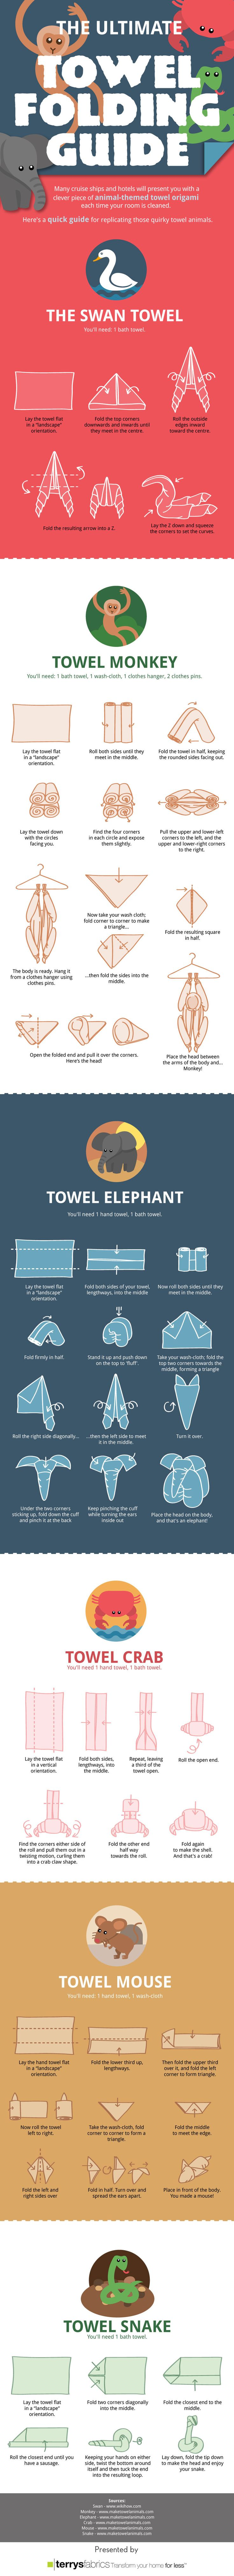 The Ultimate Towel Folding Guide #infographic #Towel #HowTo #DIY